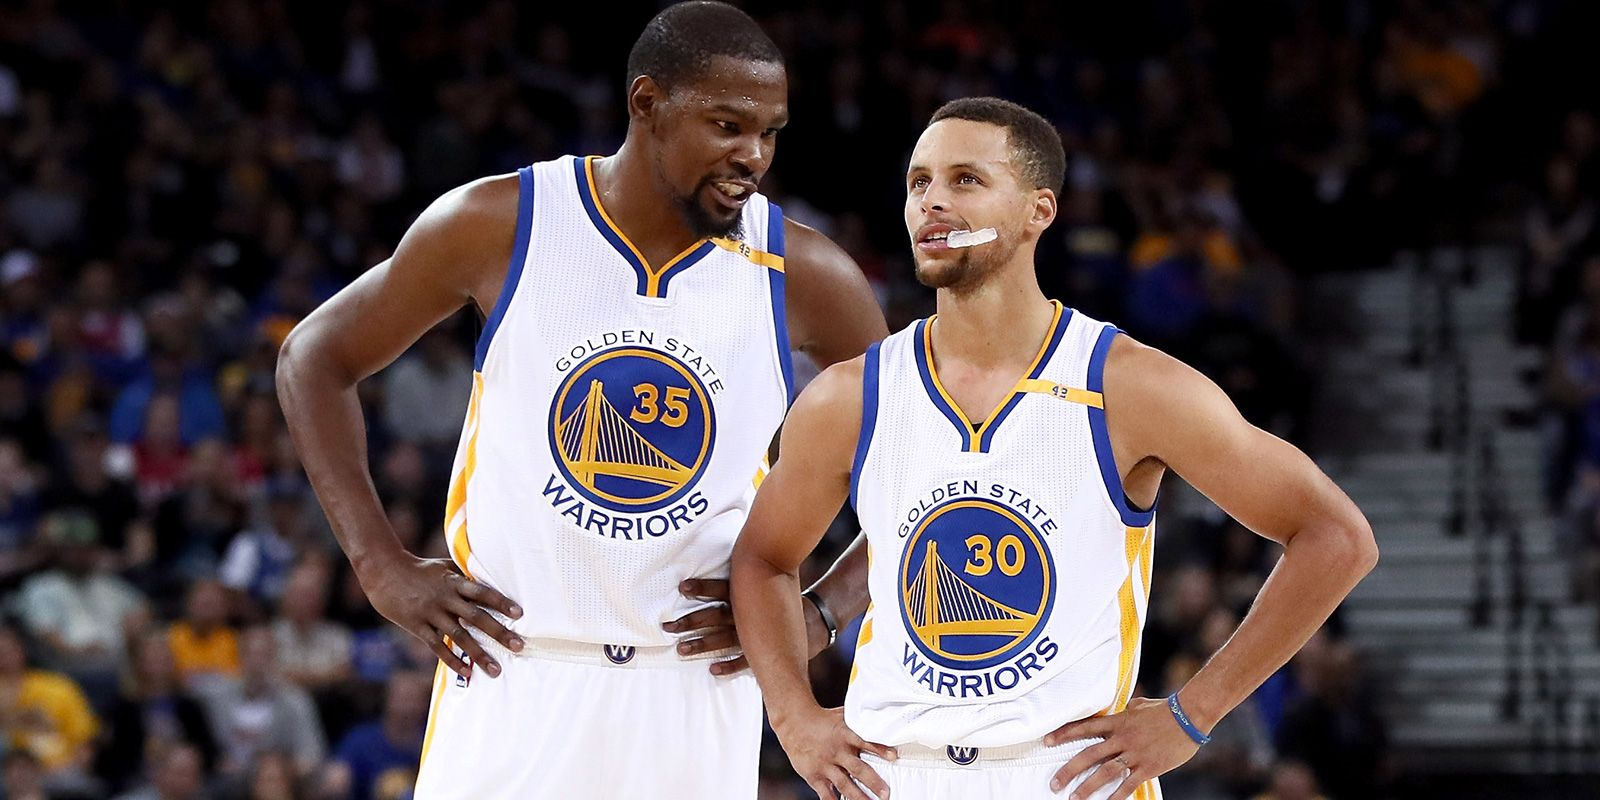 cc361c5ae101 Golden State Warriors Steph Curry can be stopped only by Kevin Durant